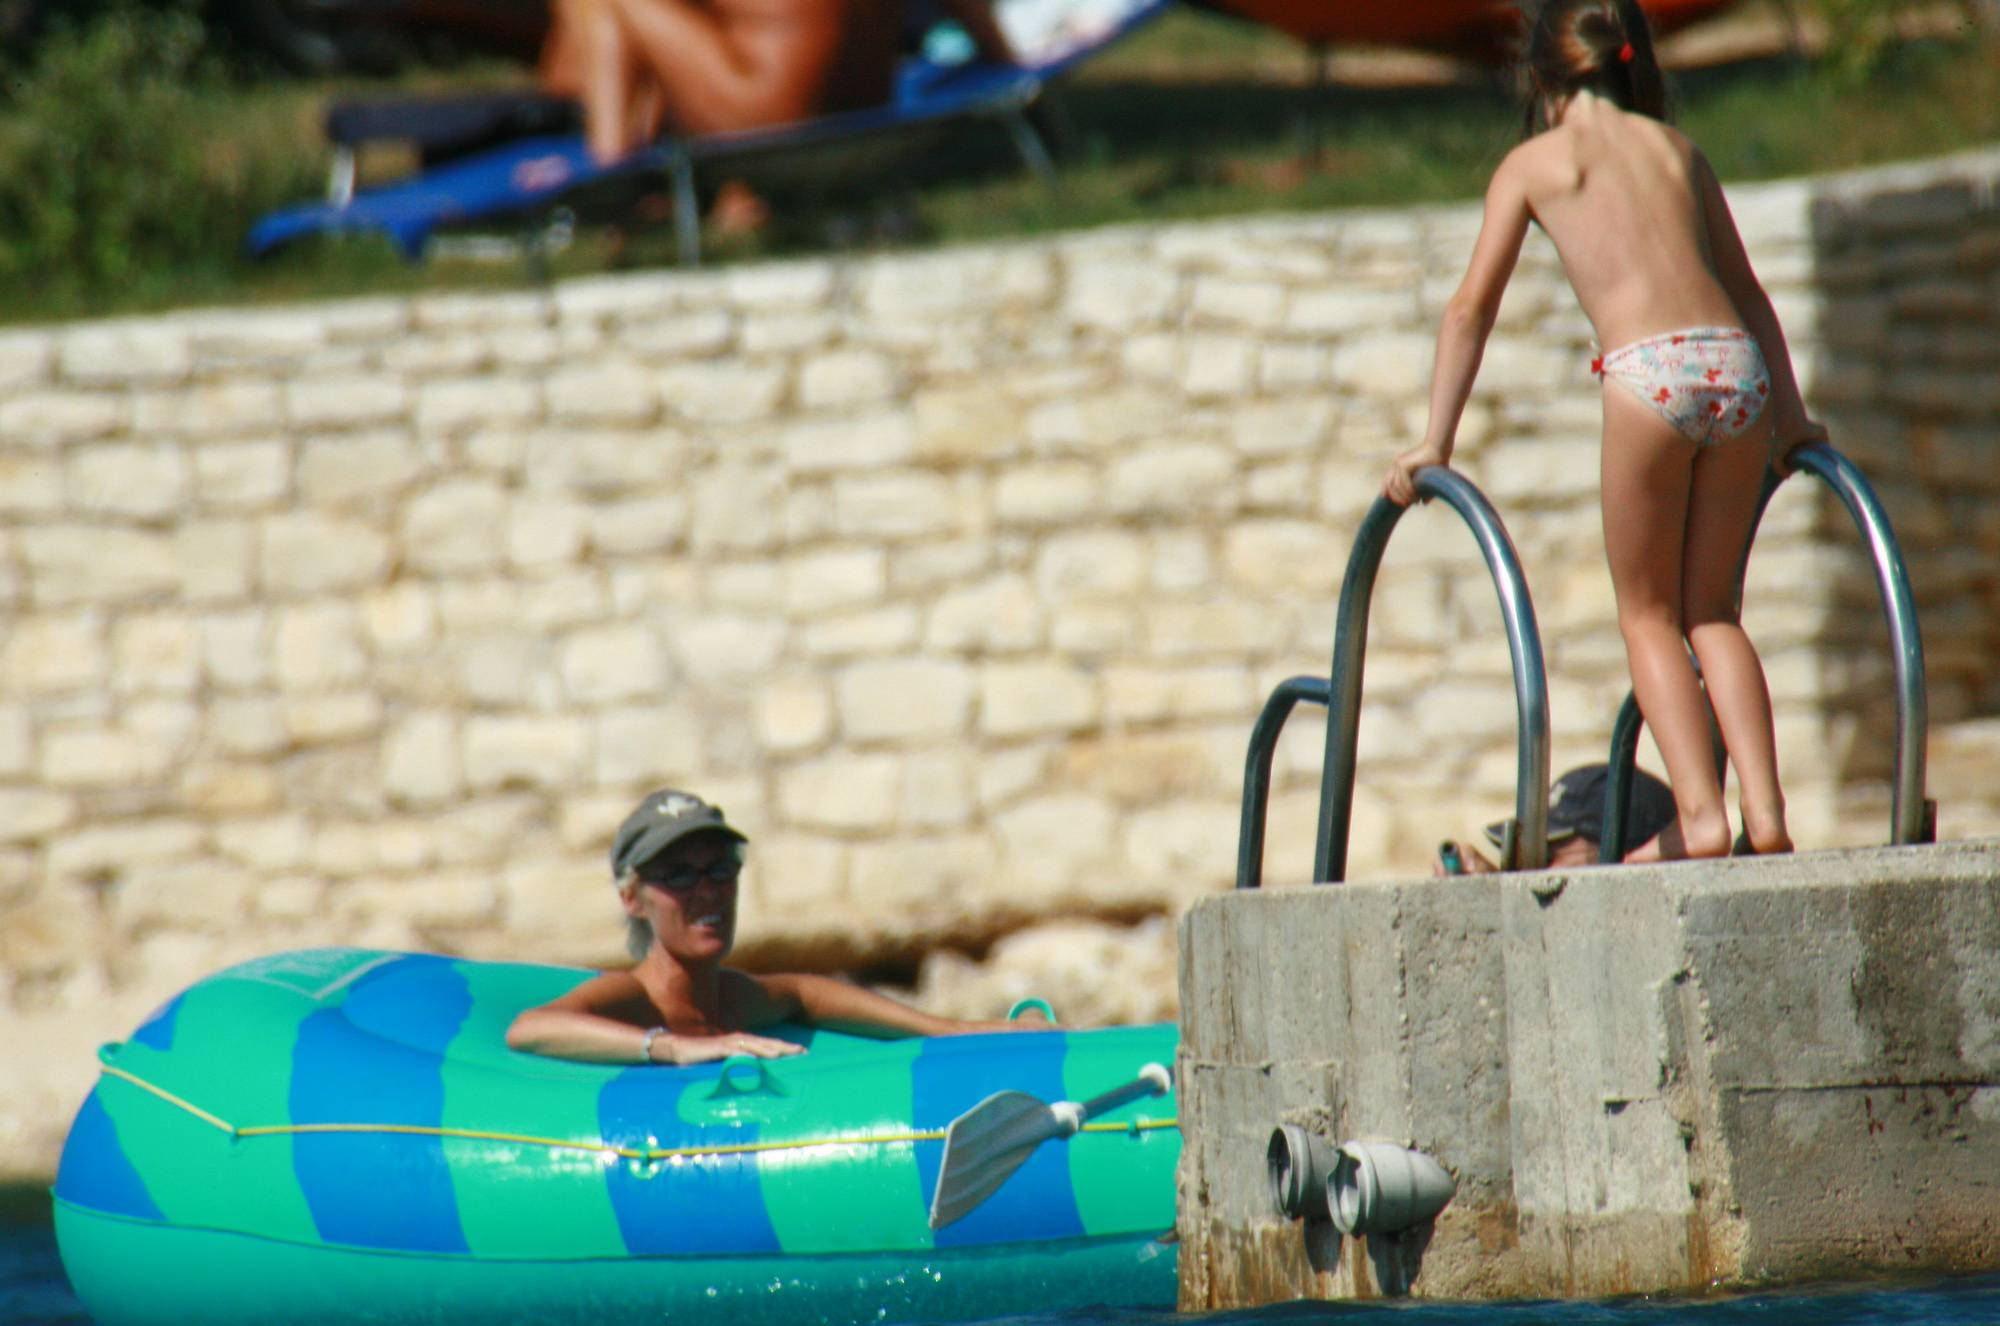 Purenudism Images-Mother Daughter Boating - 3